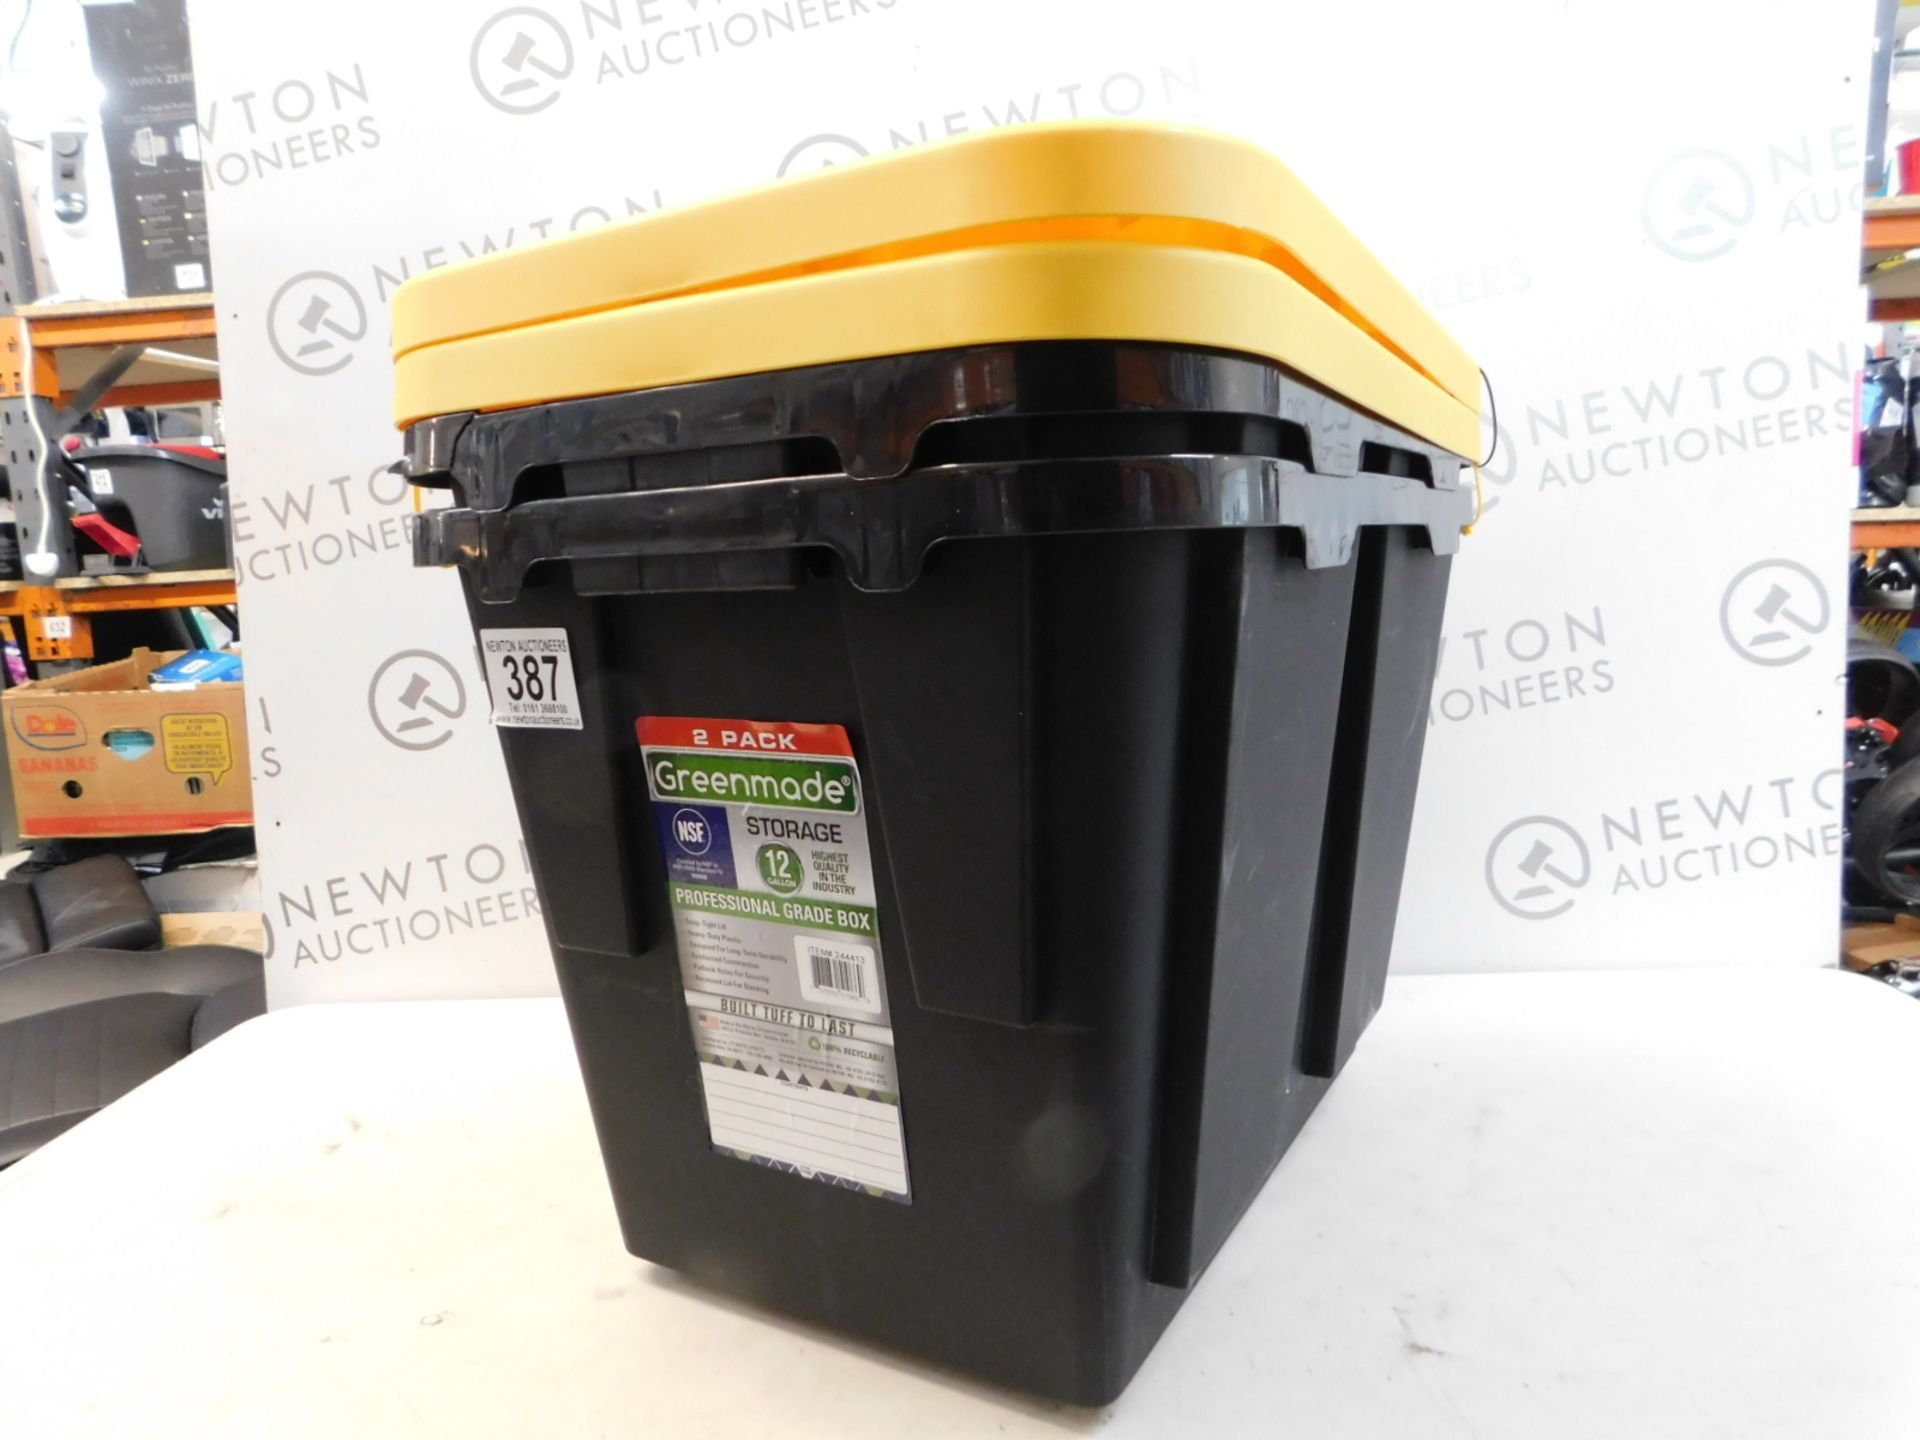 Lot 387 - 1 SET OF 2 GREENMADE PRO STORAGE CONTAINERS, 12-GALLON (YELLOW/BLACK) RRP £29